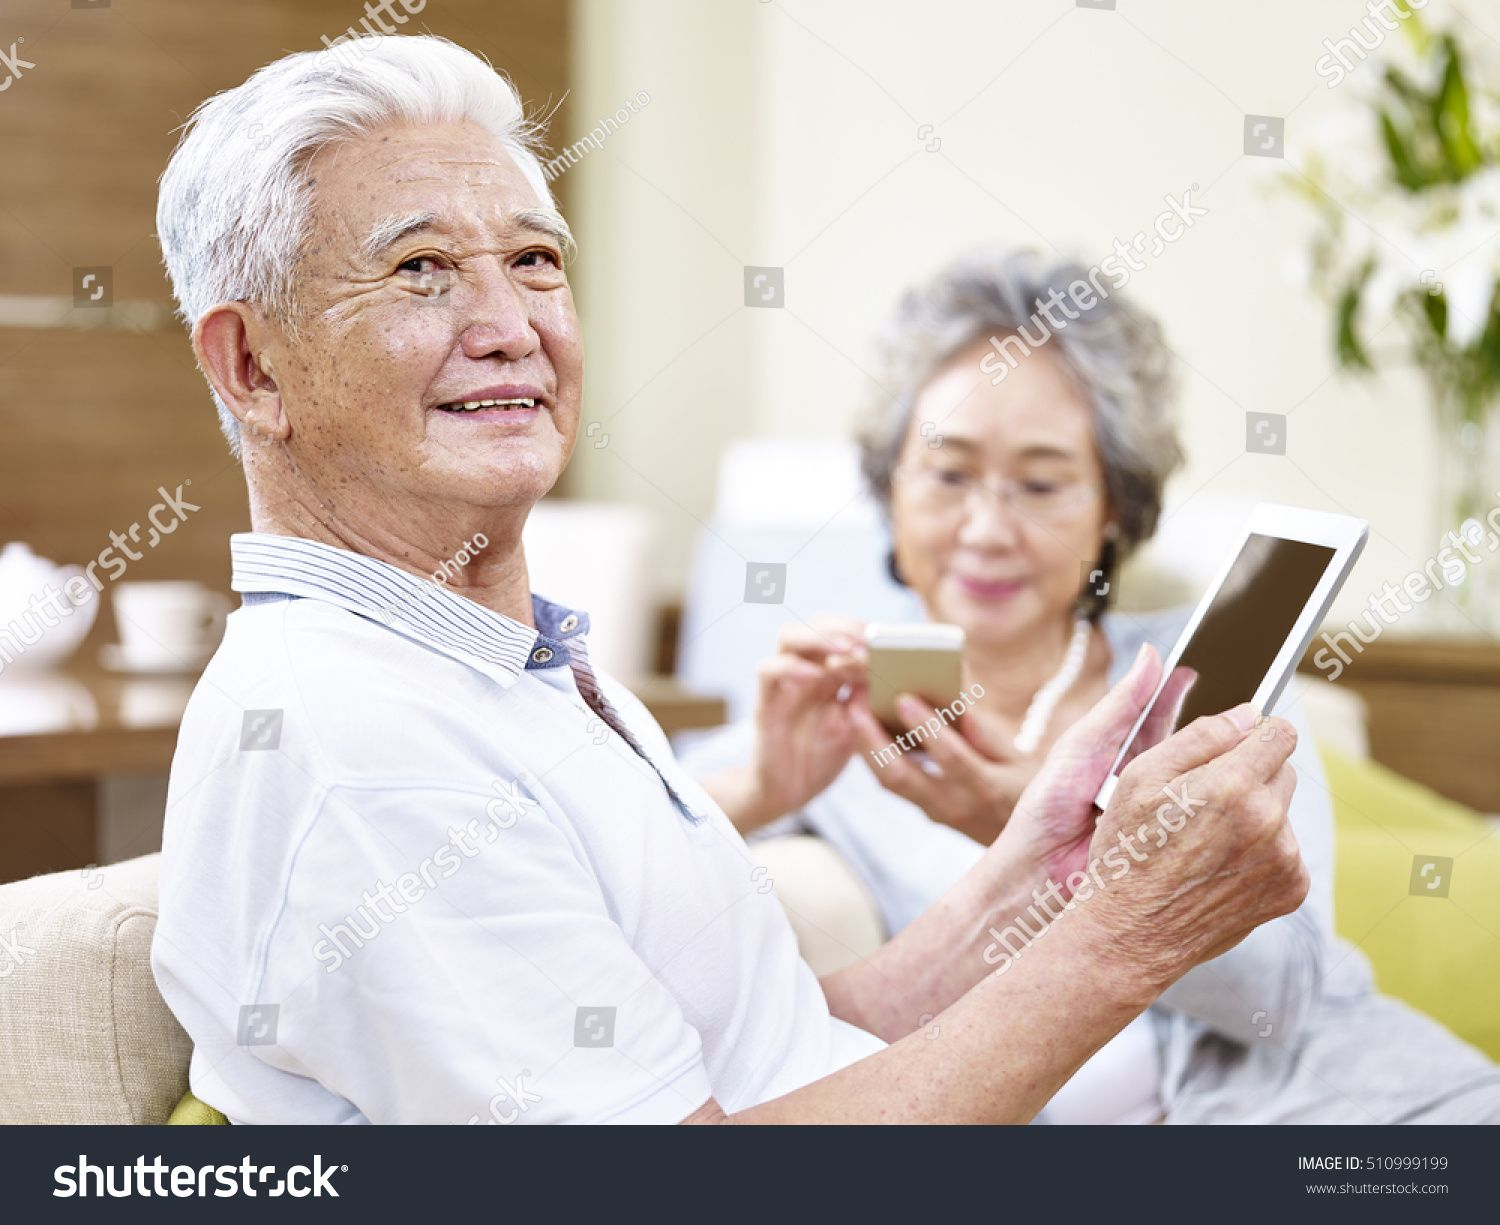 senior asian couple sitting on couch enjoying modern technology using tablet computer and cellphone #Ad , #SPONSORED, #sitting#couch#couple#senior